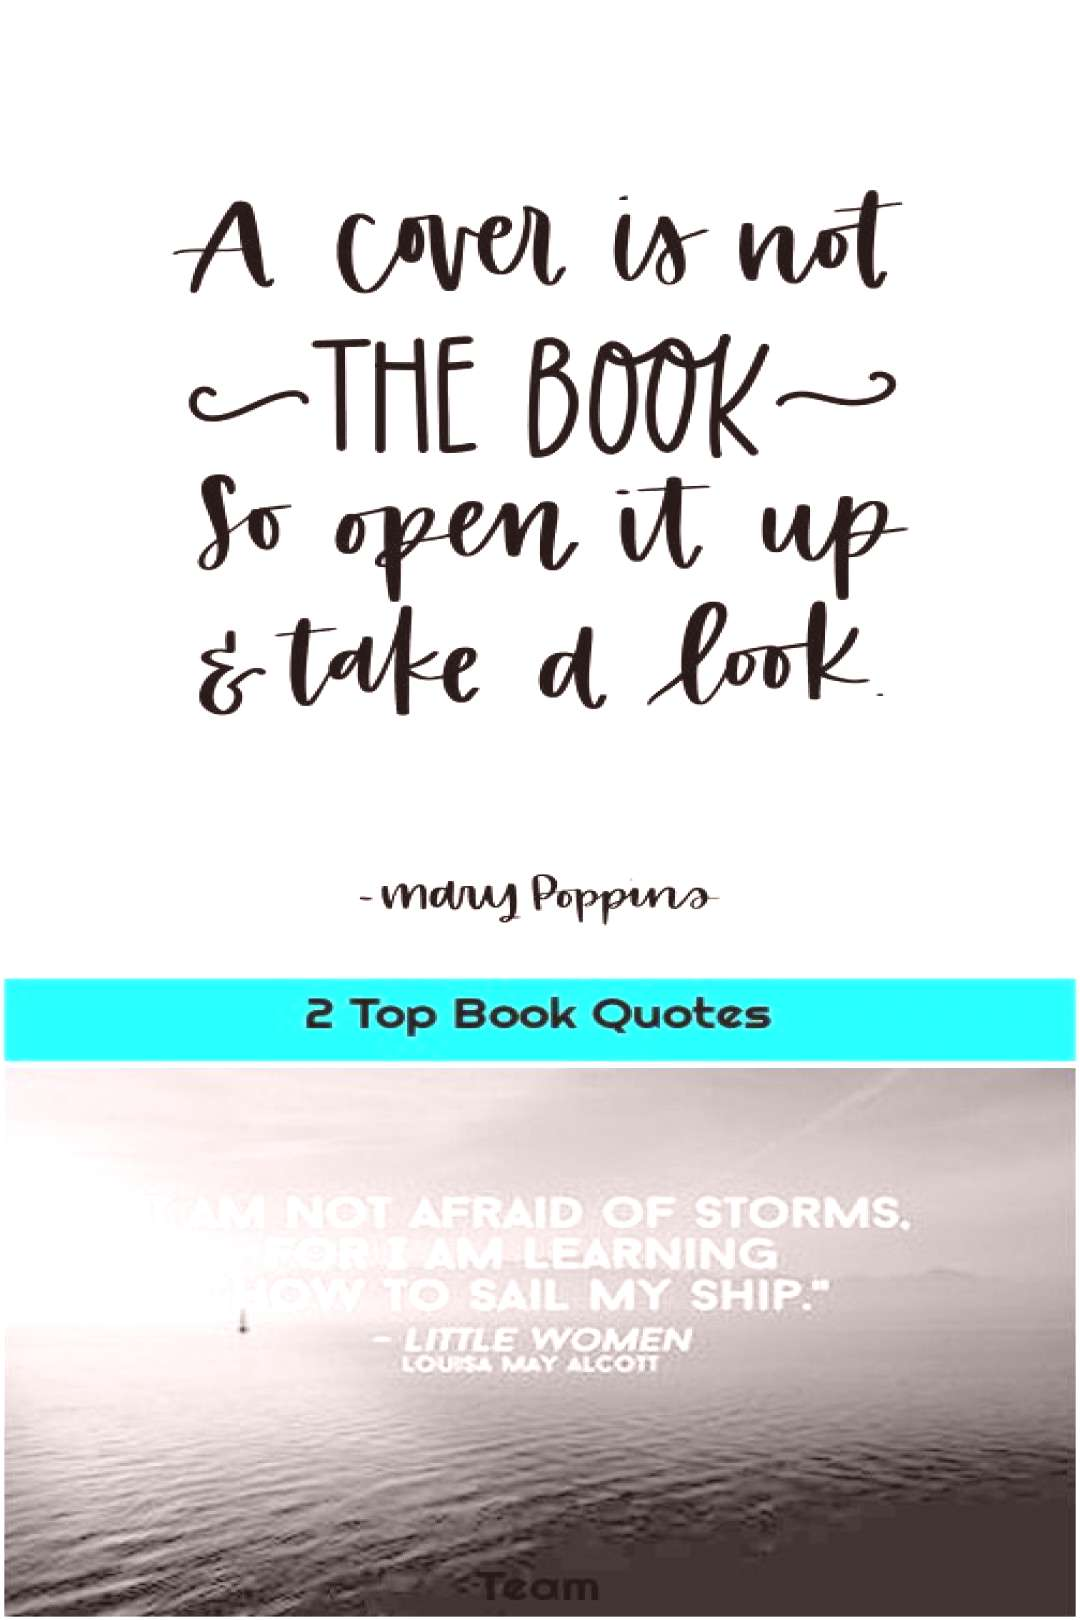 2 Top Book Quotes 1. 15 Quotes from Mary Poppins Returns to Brighten Your Day • TWF 15 Quotes fro